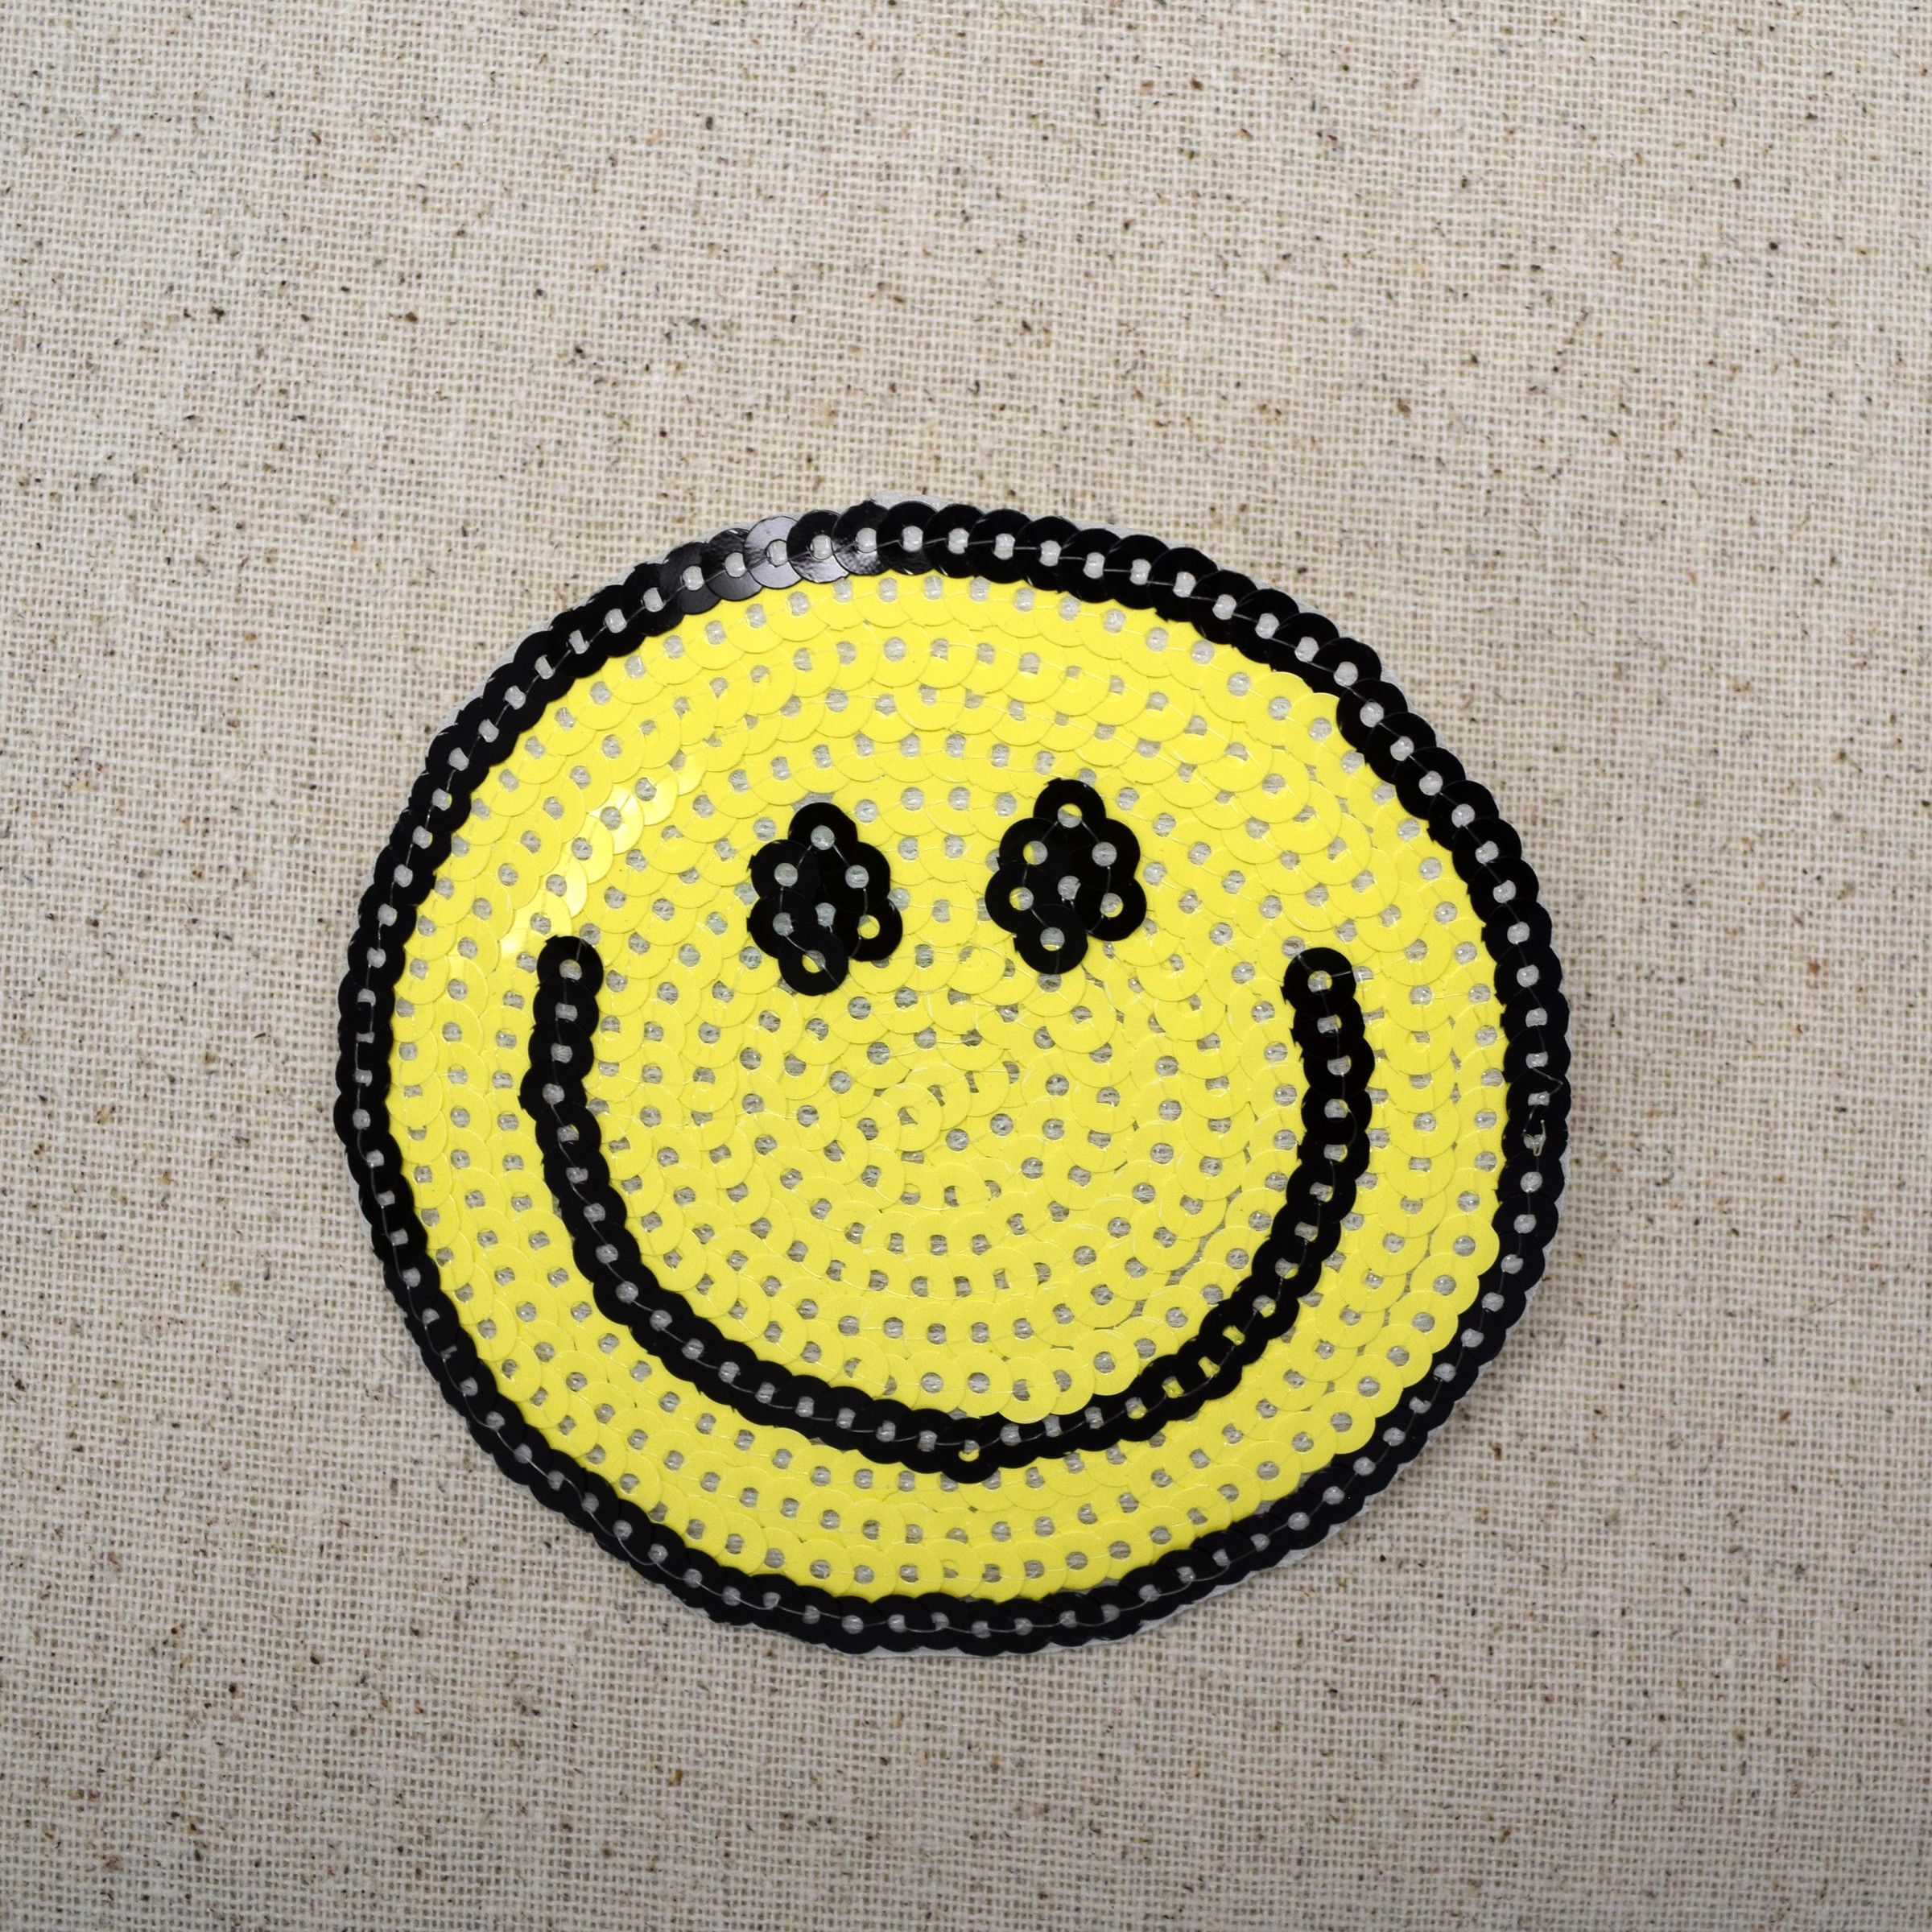 Smiley Face - Sequin - Large - Iron on Applique - Embroidered Patch - 604040-A